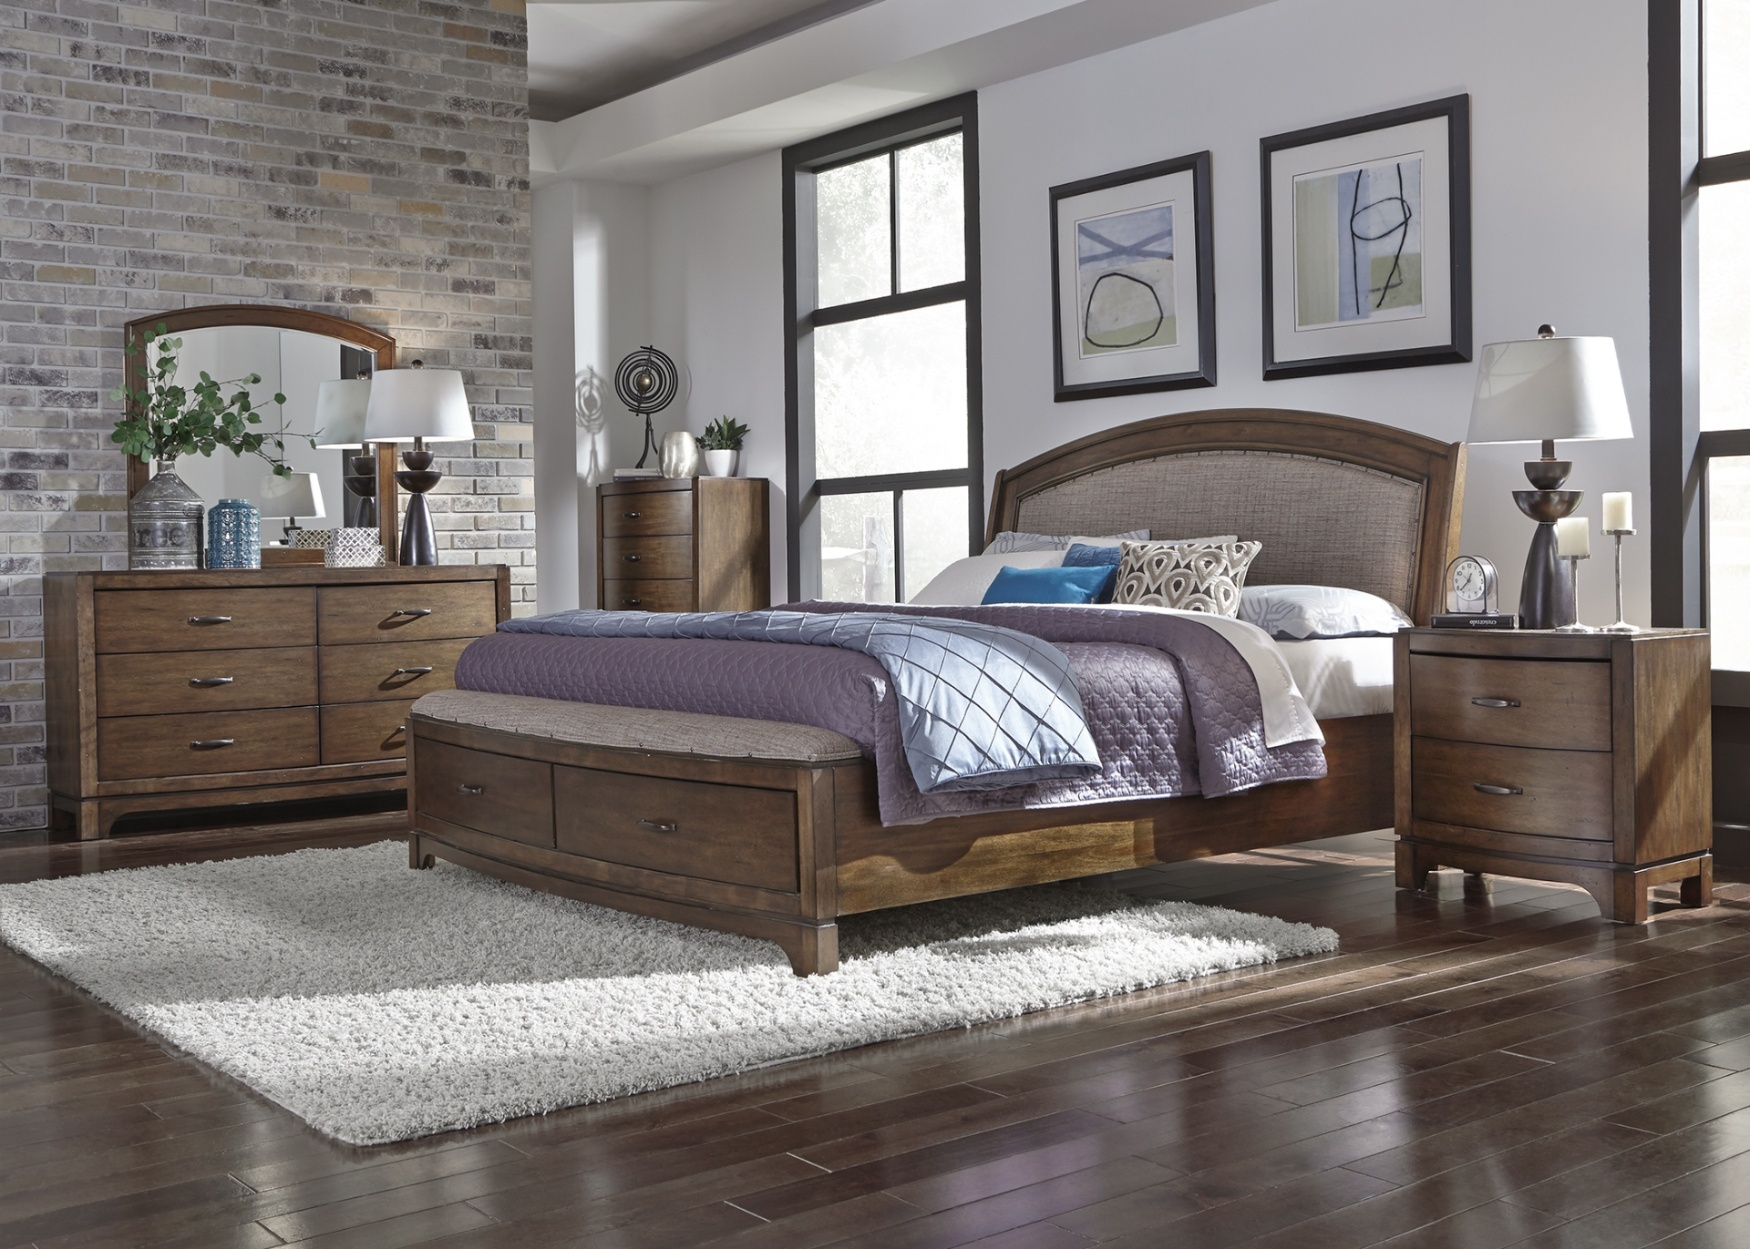 Bedroom Sets Greensboro Nc furniture clearance center - home